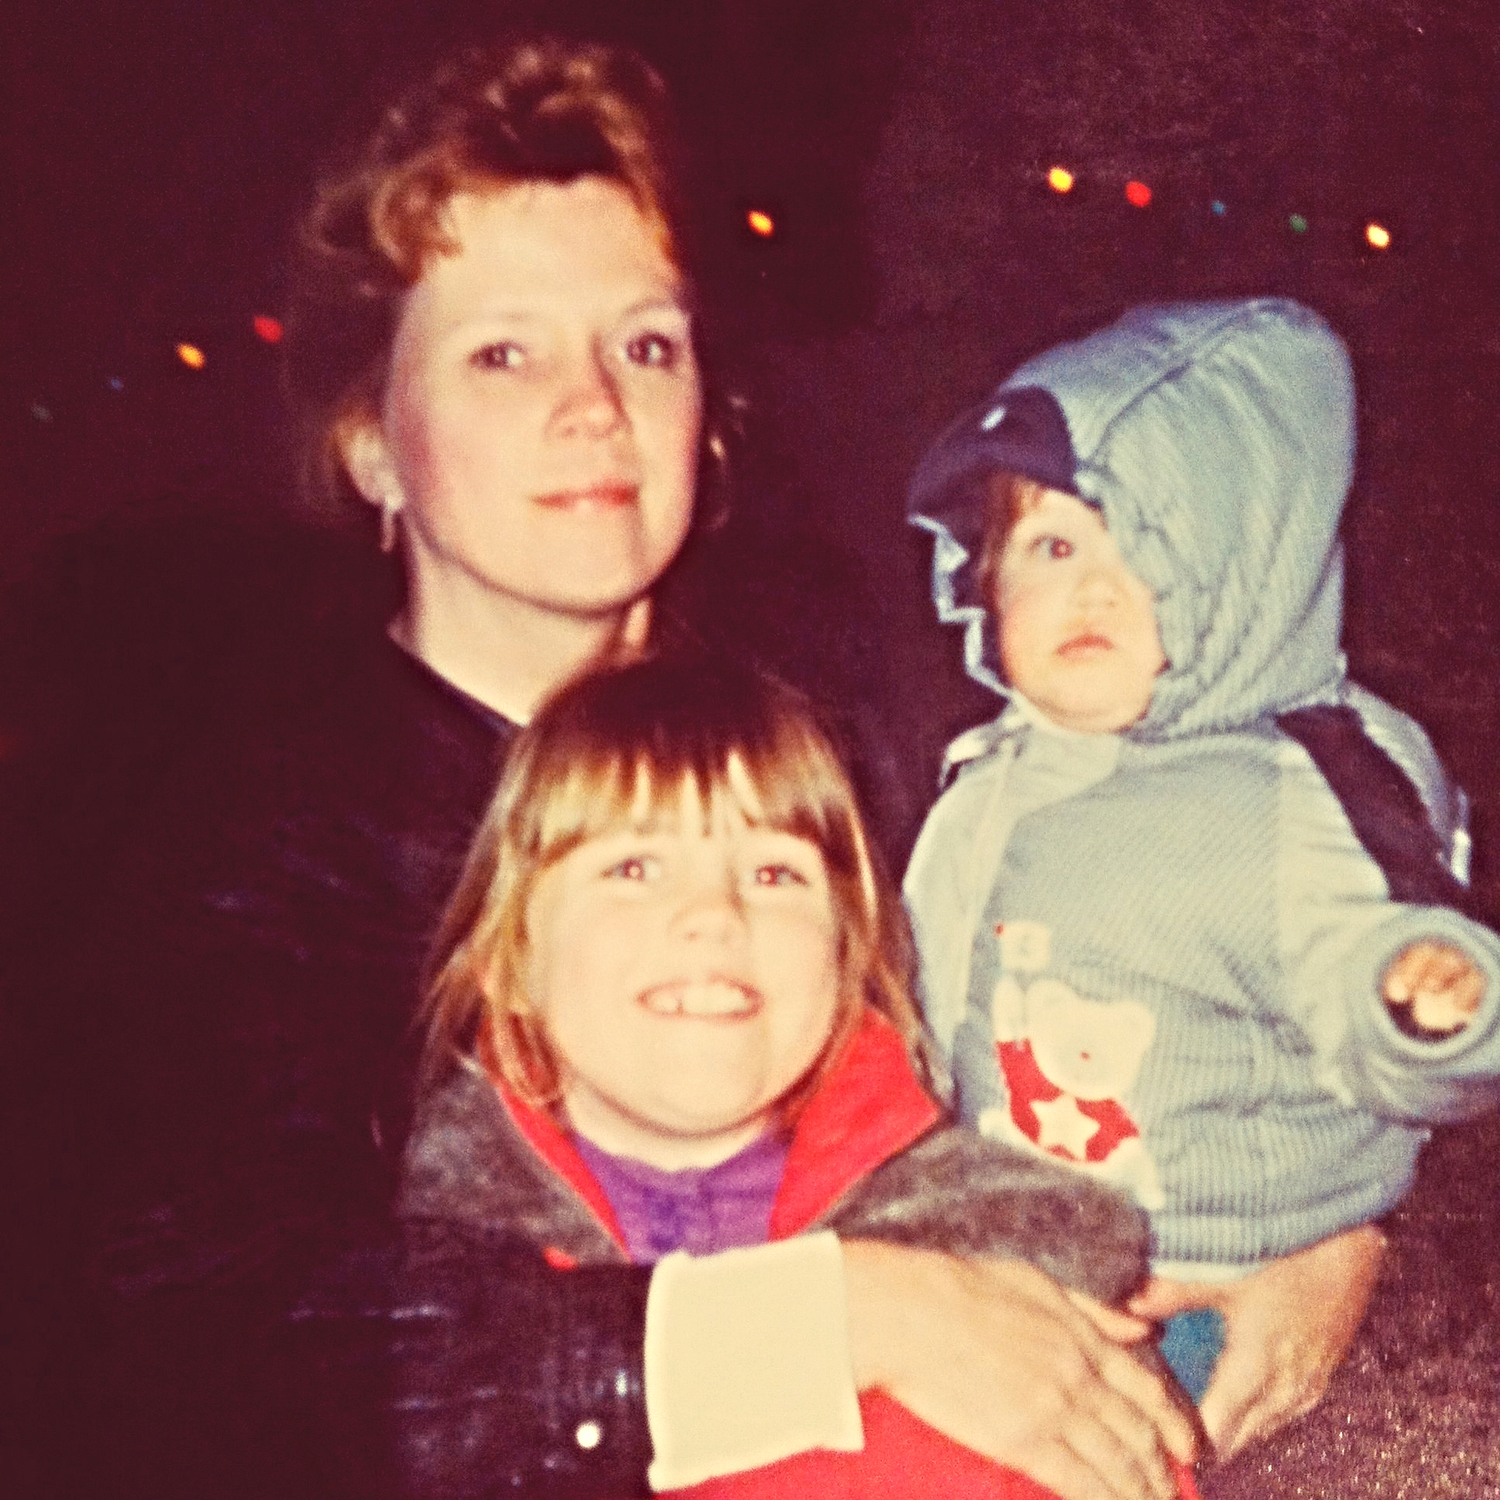 """My mom with my brother and myself in December 1991. On her Facebook page, my mom captioned this photo: """"This is what happiness looks like."""""""